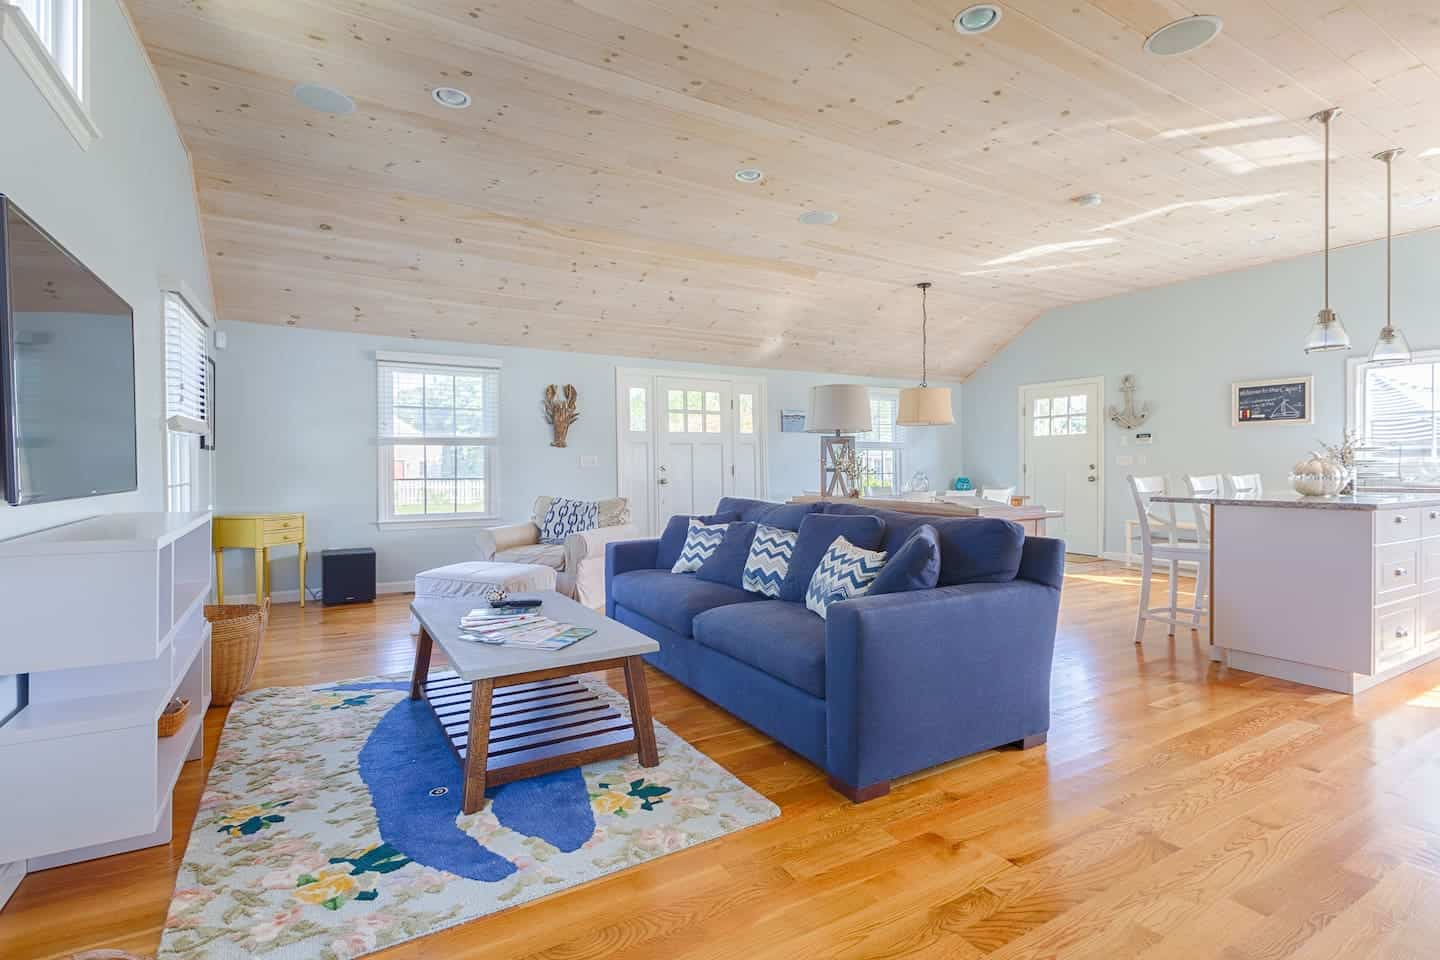 Image of Airbnb rental in Cape Cod